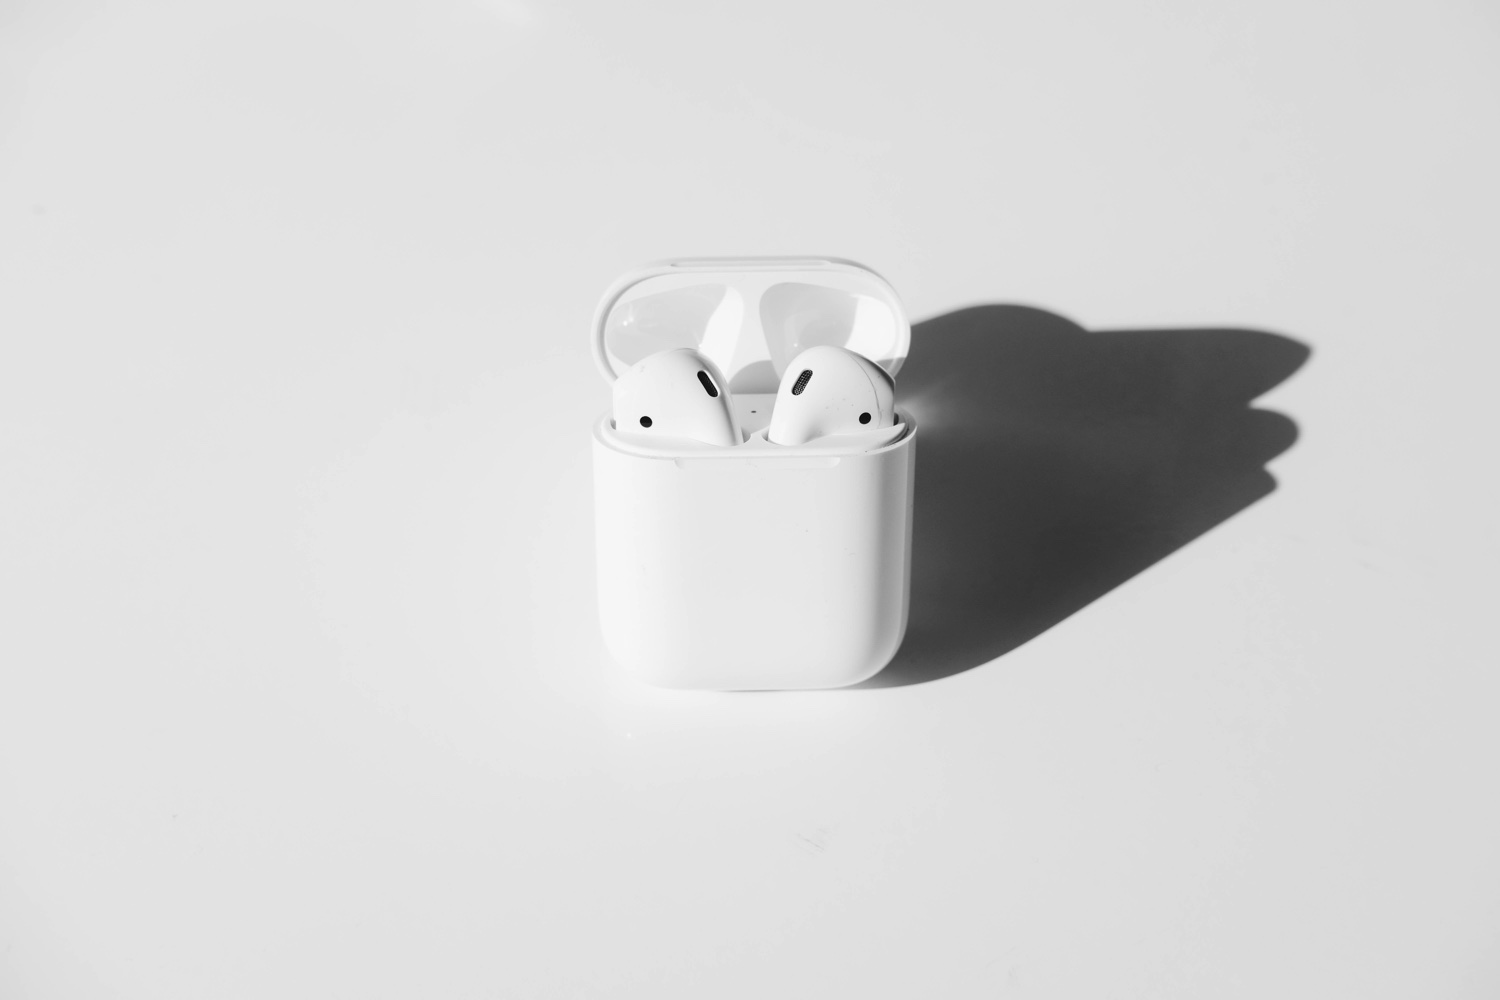 Airpods. Foto: Aaina Sharma / Unsplash